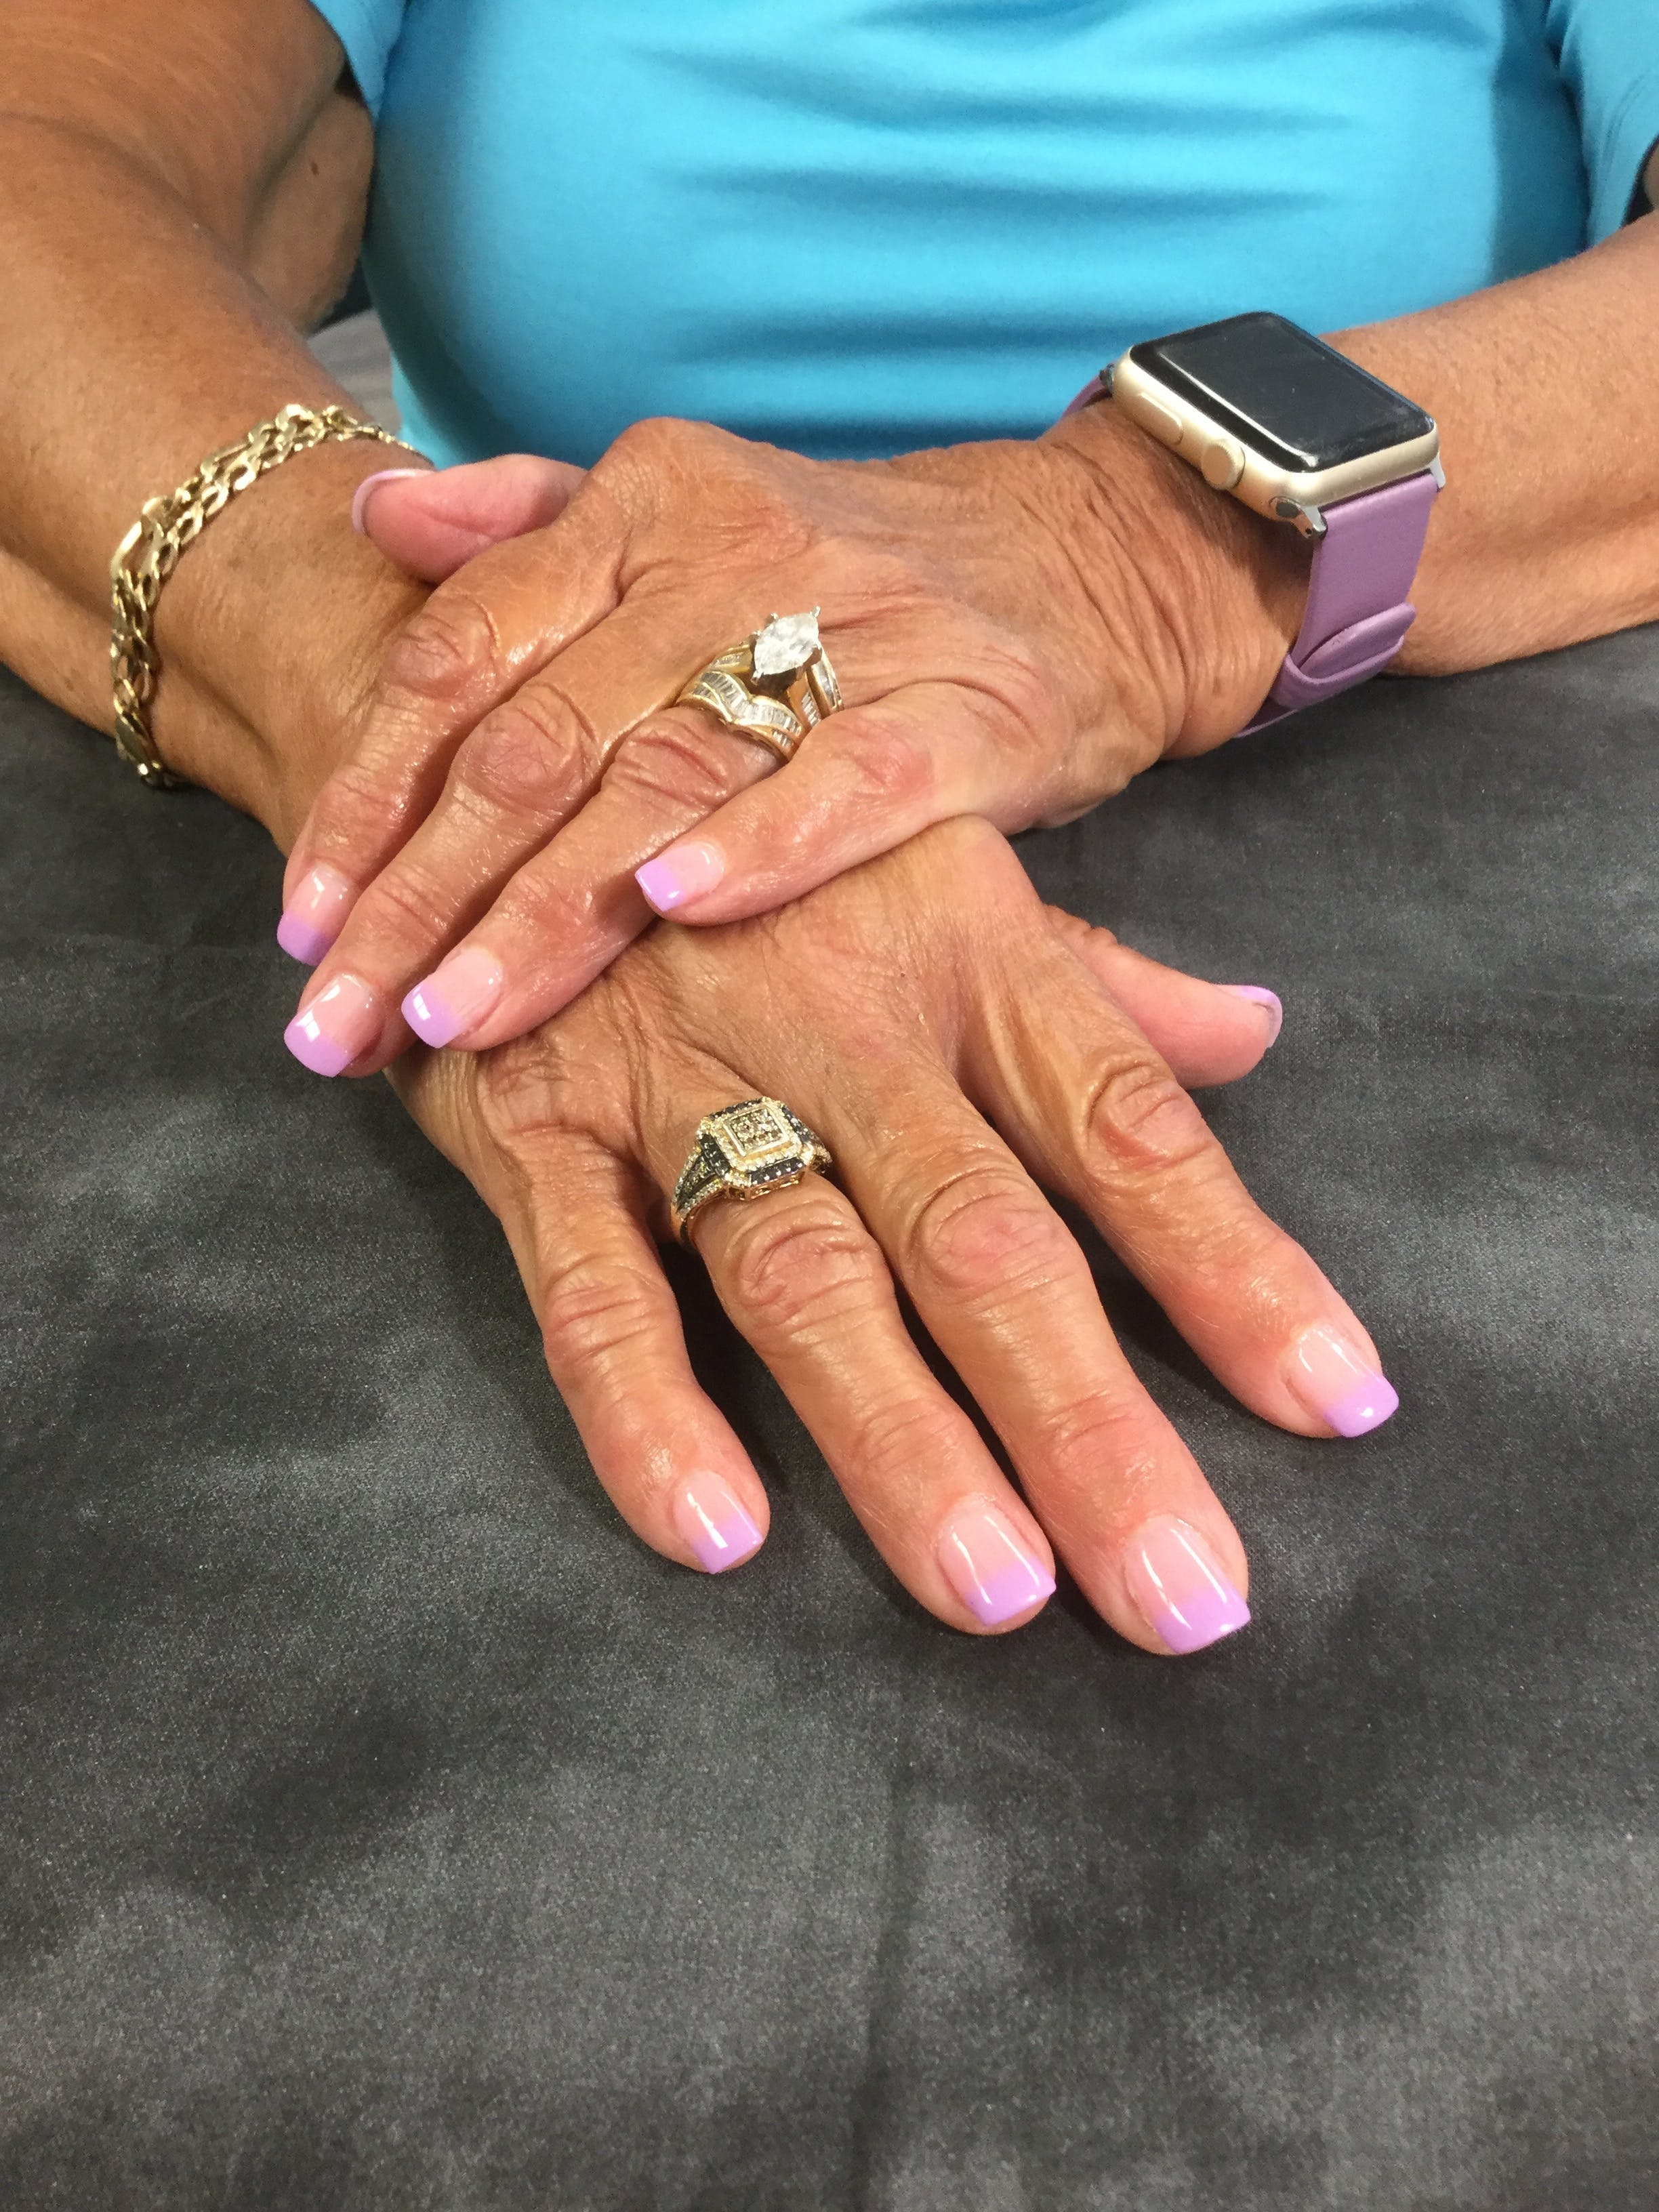 Free stock photo of Pastel French dip nails